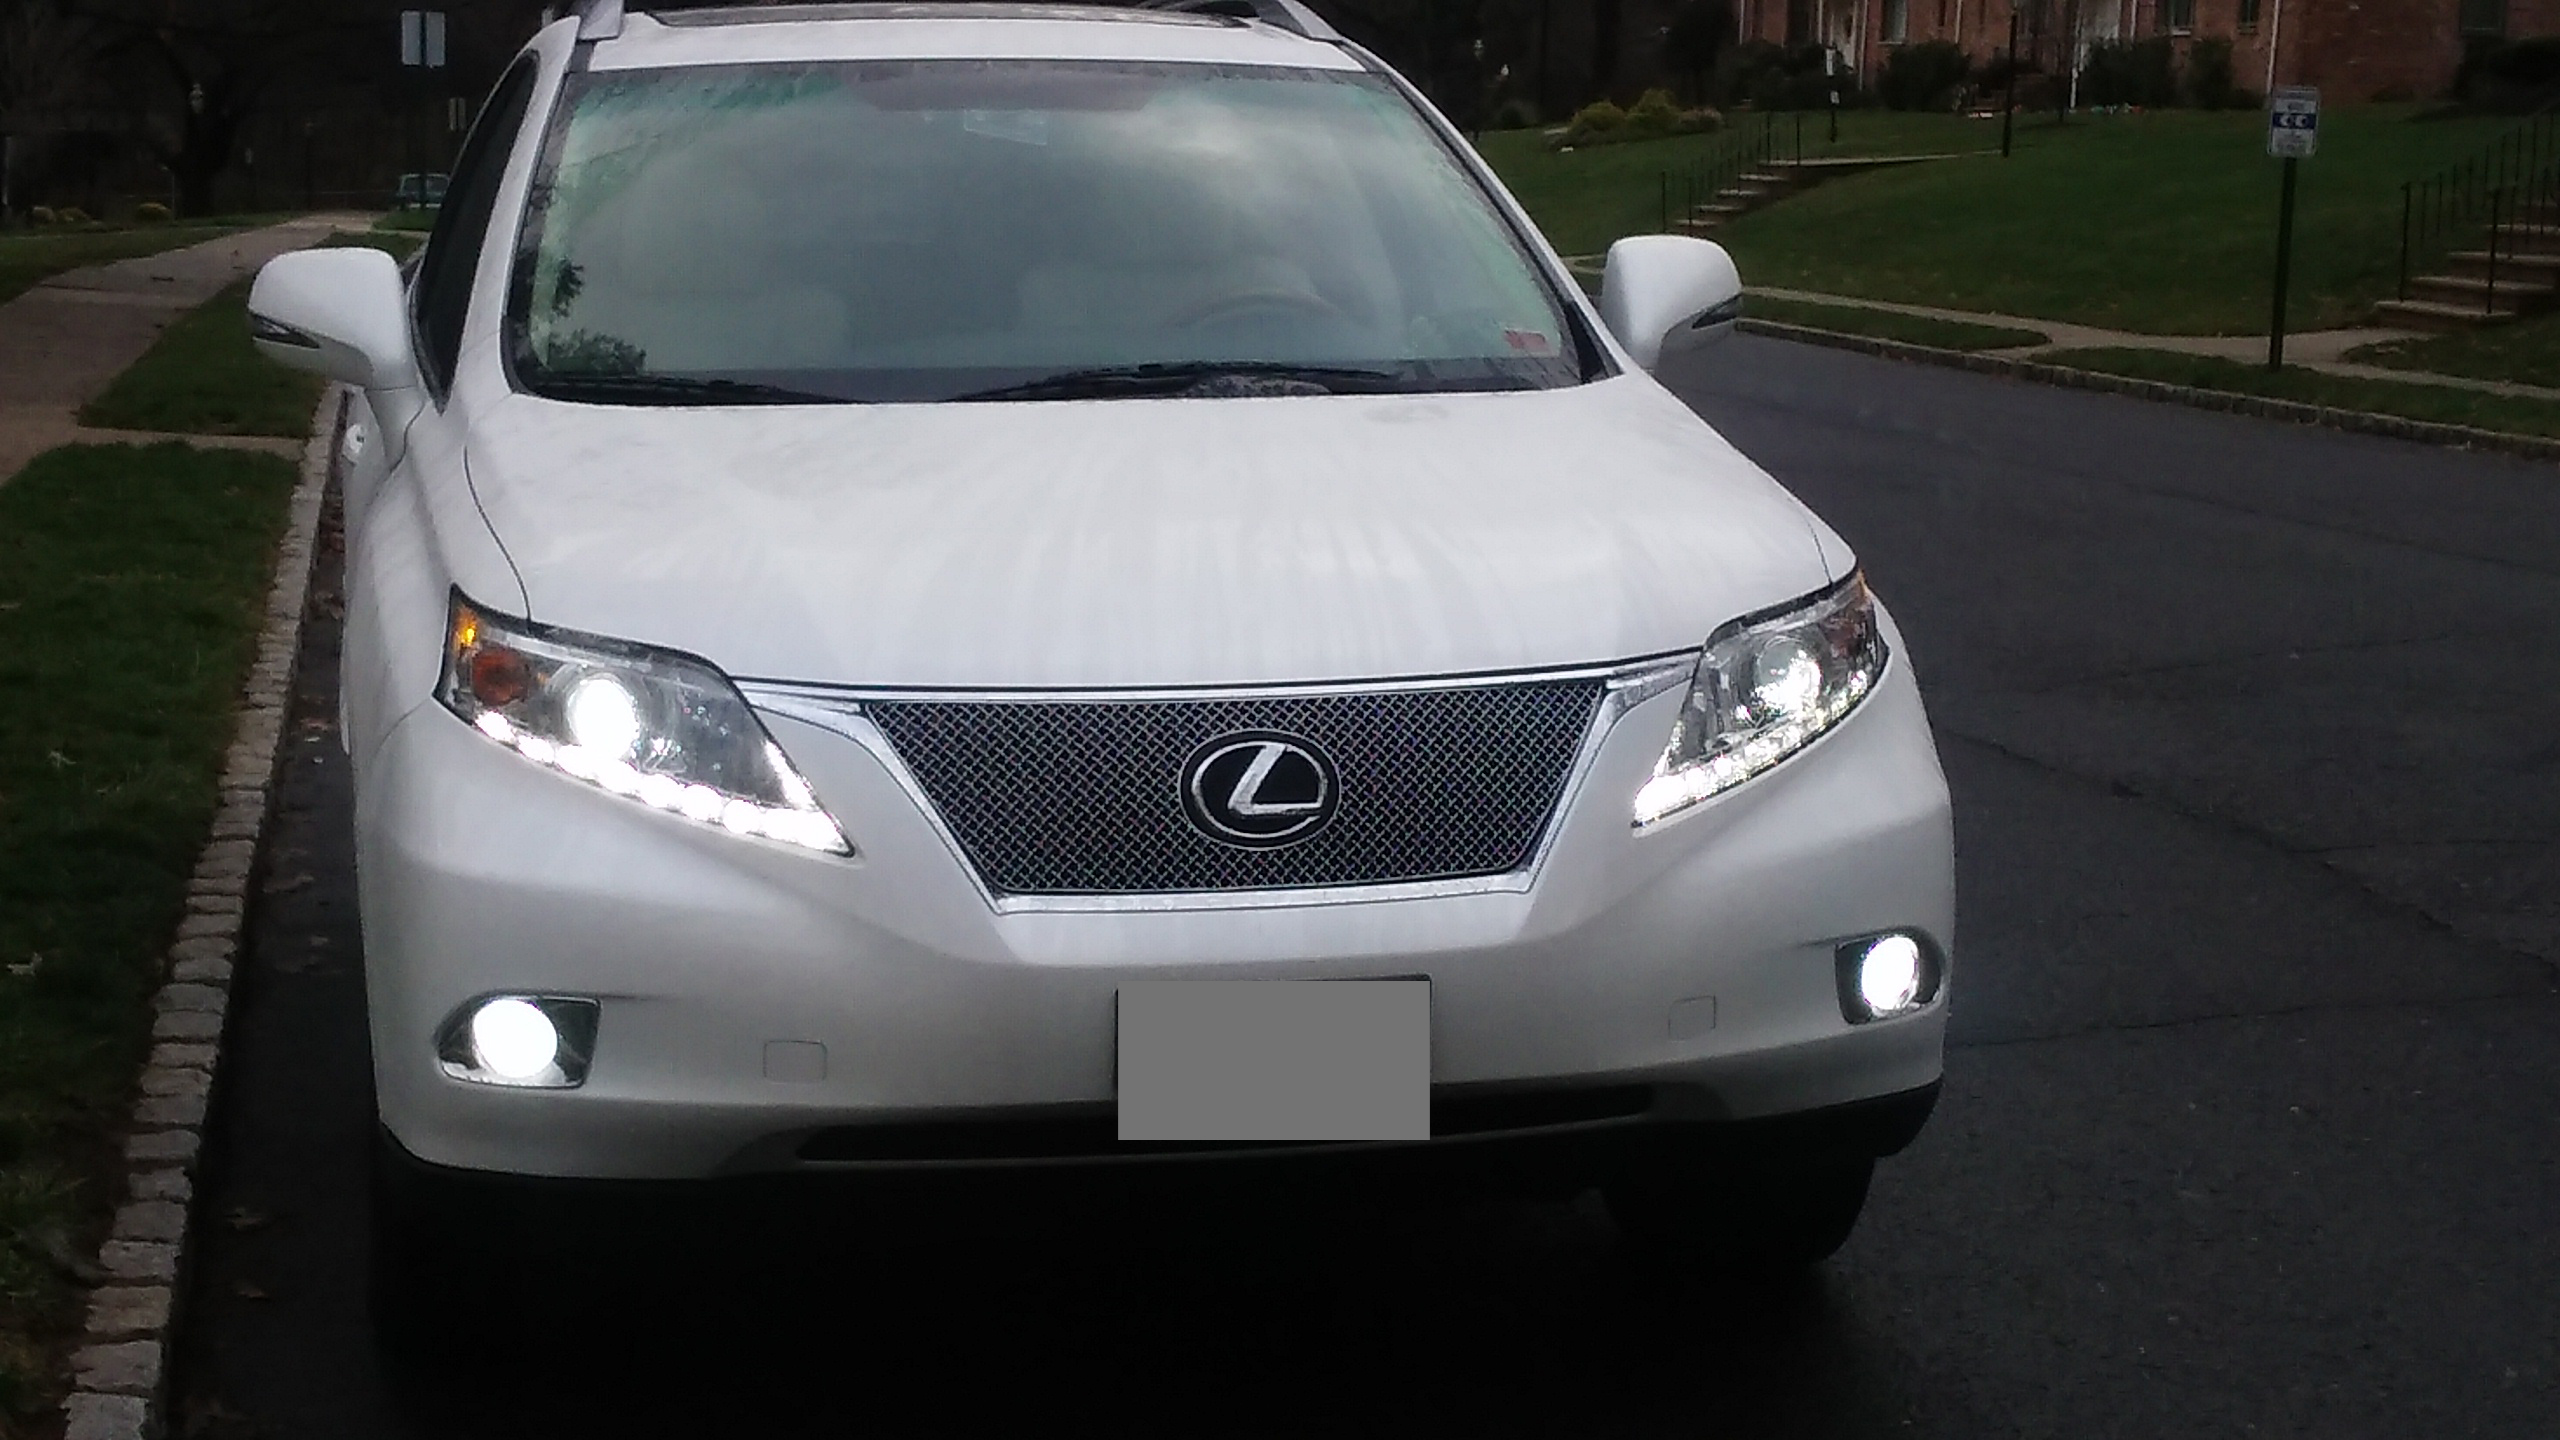 southern inventory sport bl fwd utility used pre owned in motors rx honda lexus savannah